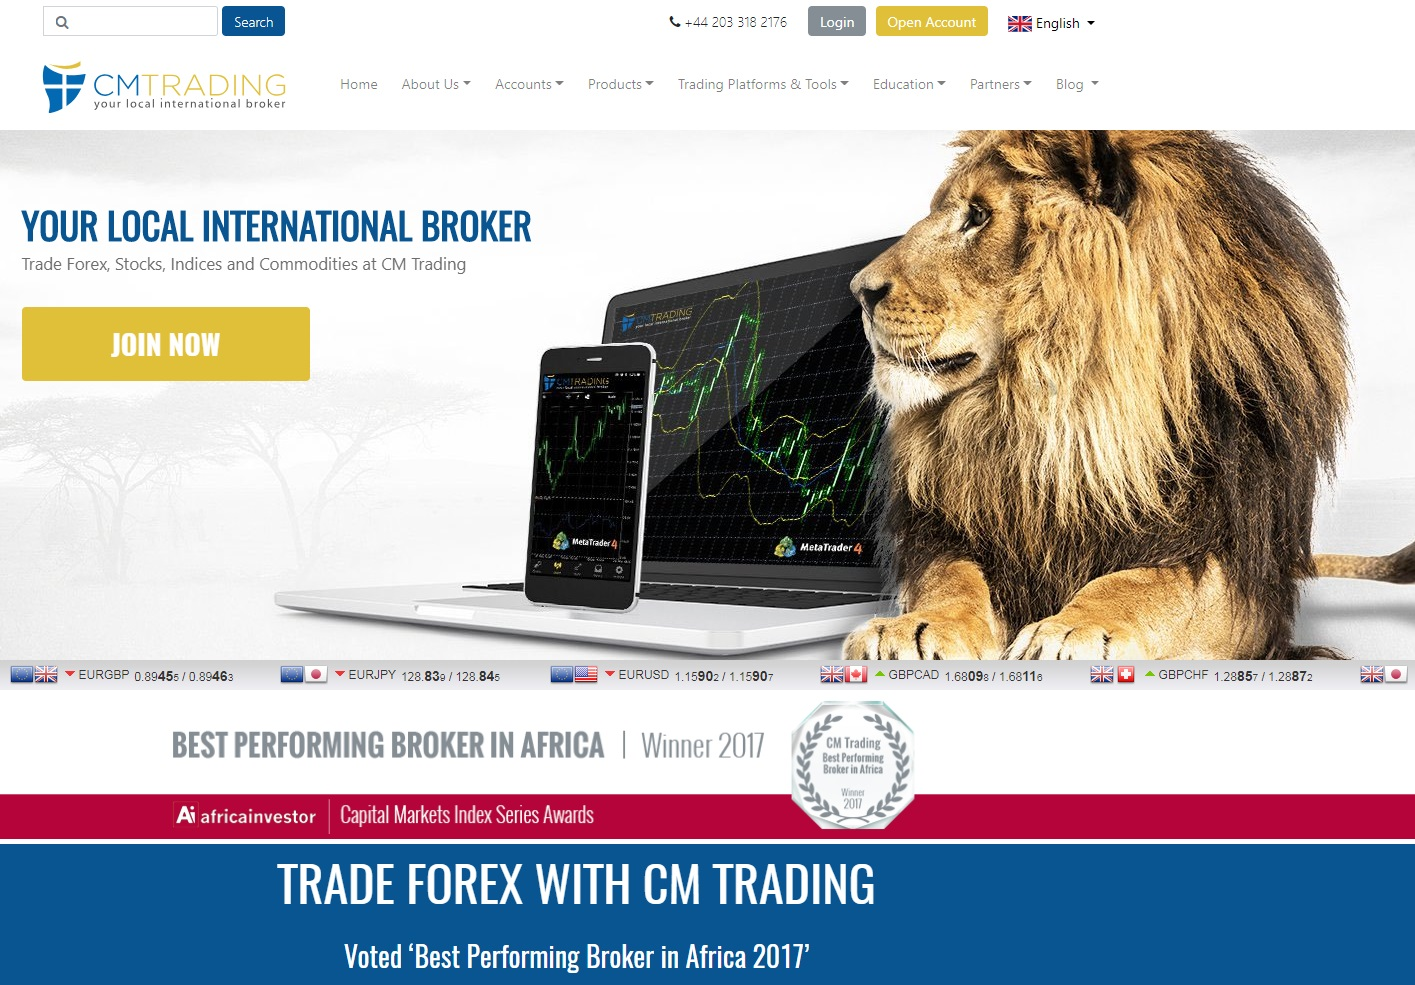 CM Trading - Award Winning Broker Can Fulfill All Your Trading Needs